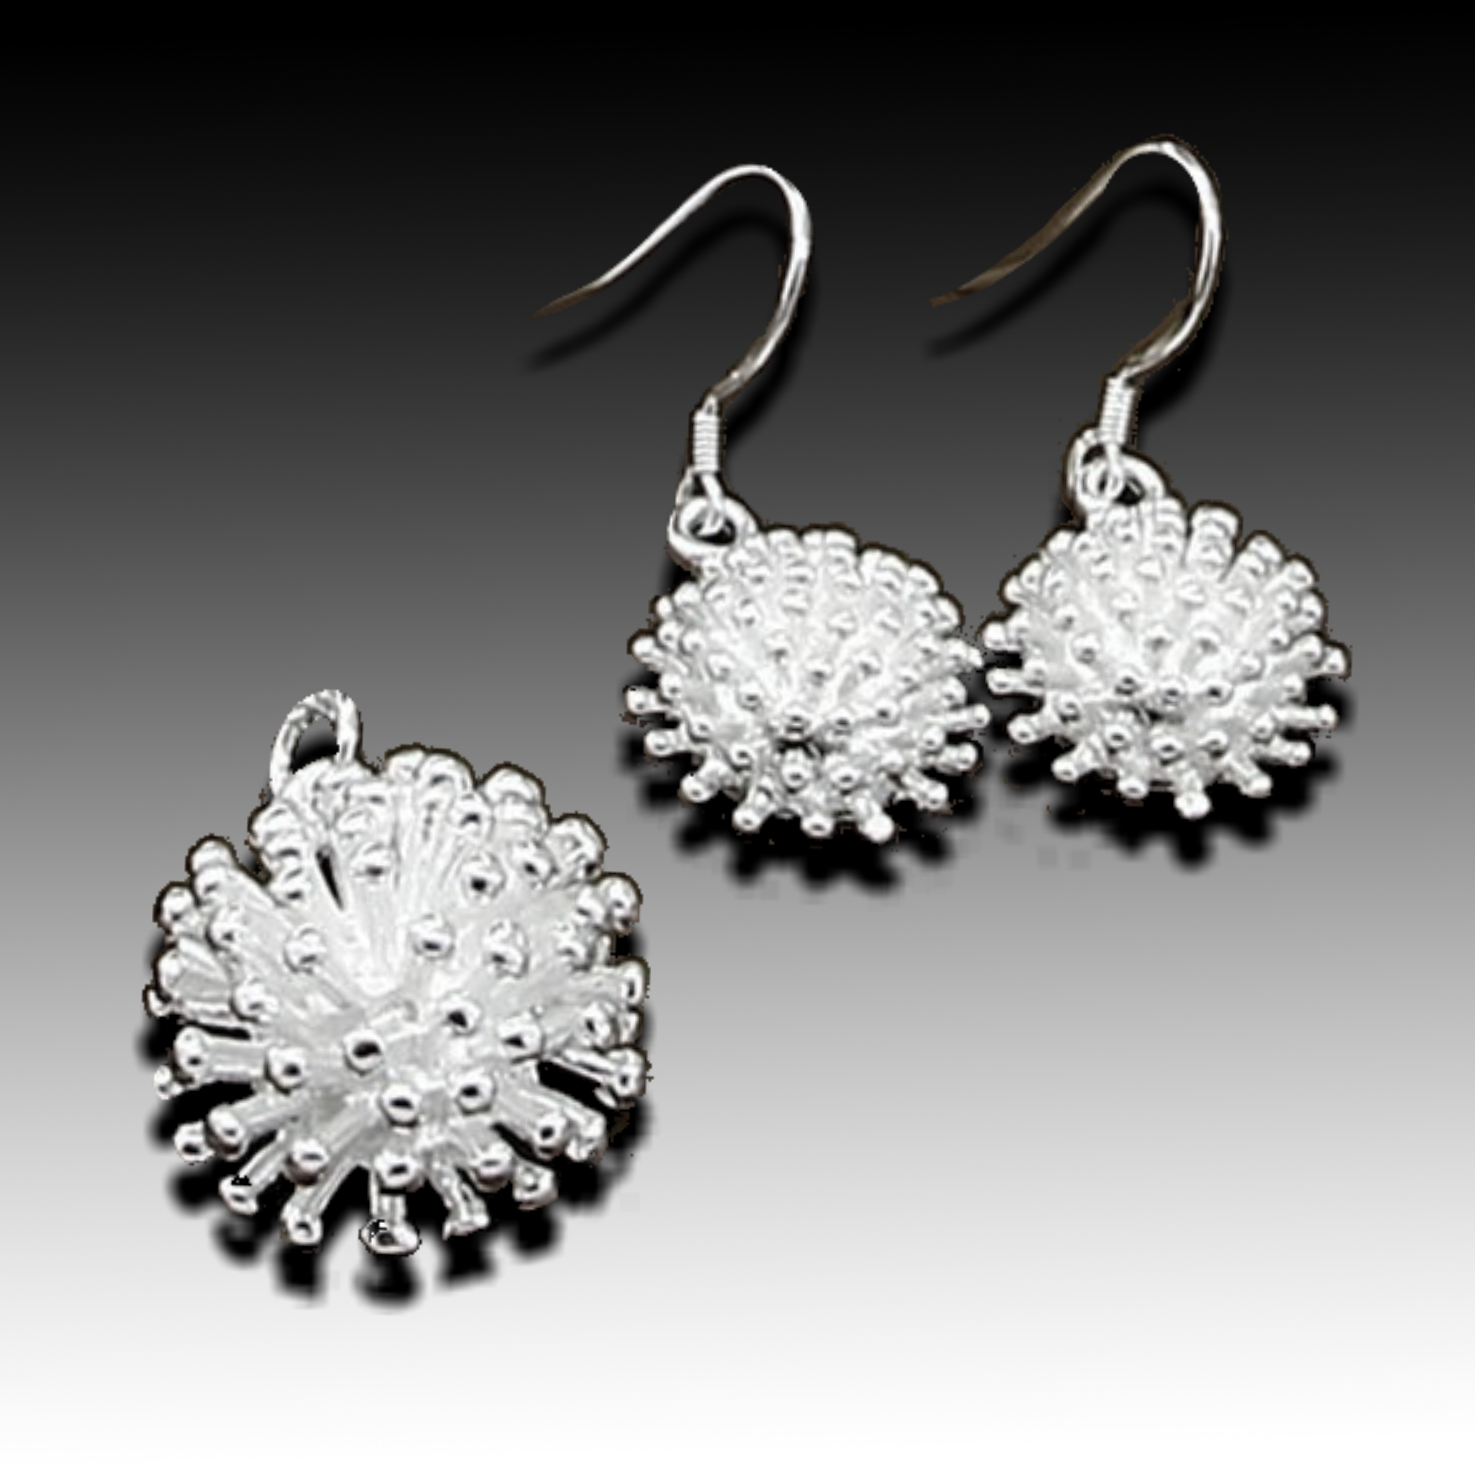 Starburst Earrings & Pendant Set